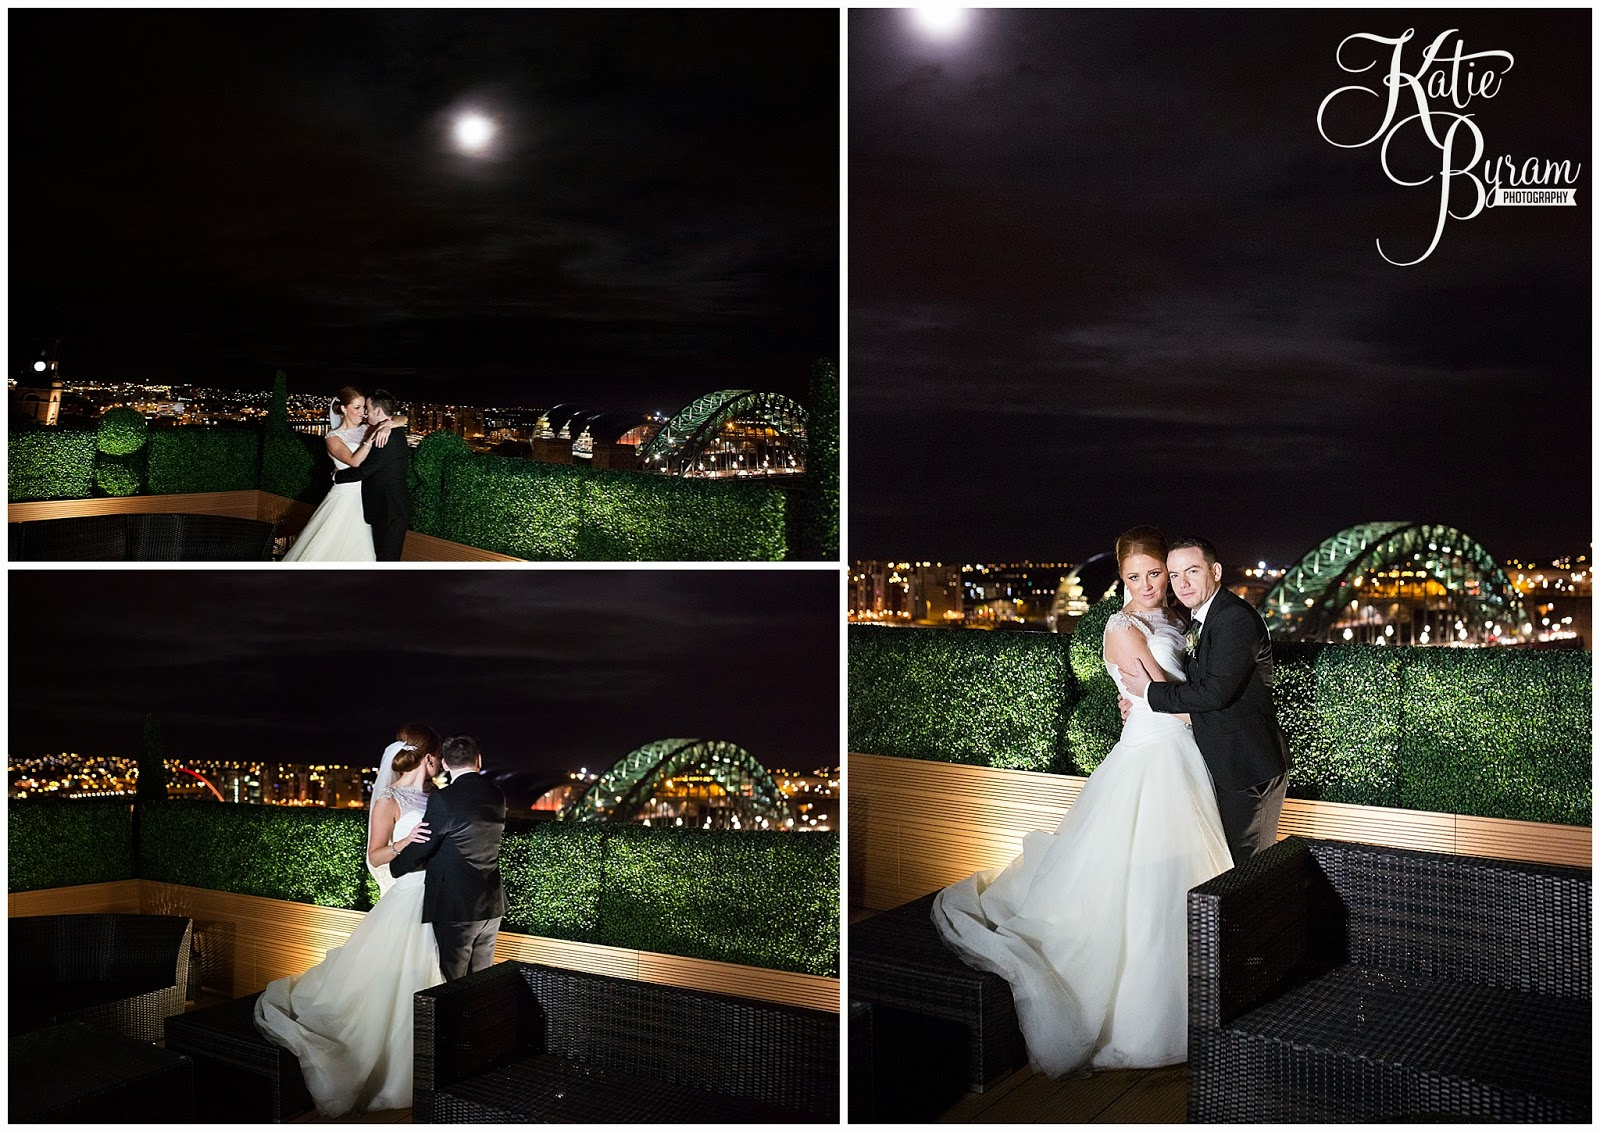 newcastle city centre wedding, the vermont hotel,vermont weddings, newcastle wedding venue, katie byram photography, hotel wedding newcastle, quayside, nighttime wedding photographs